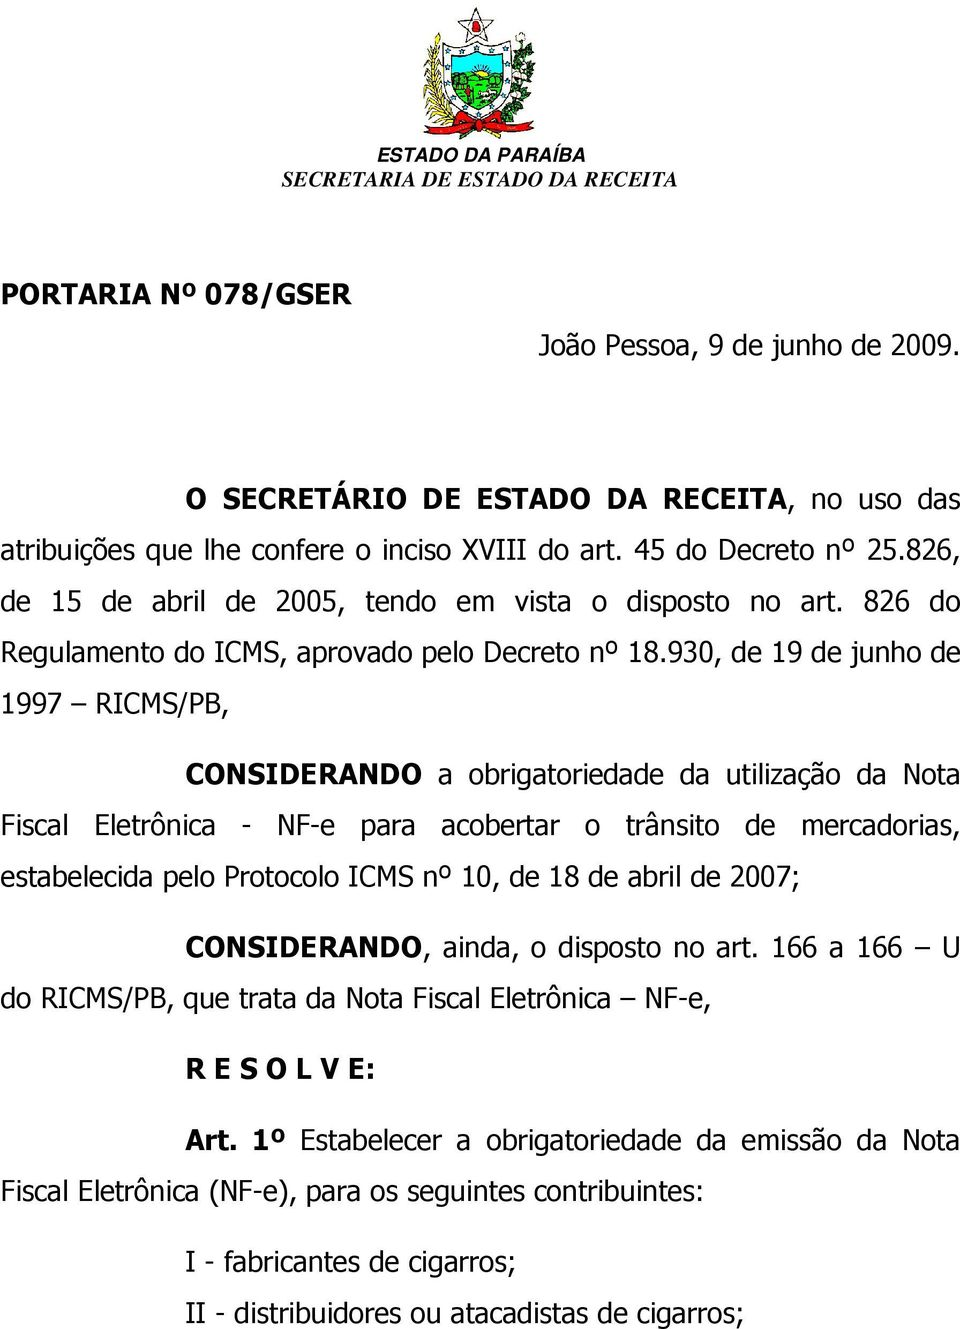 826 do Regulamento do ICMS, aprovado pelo Decreto nº 18.